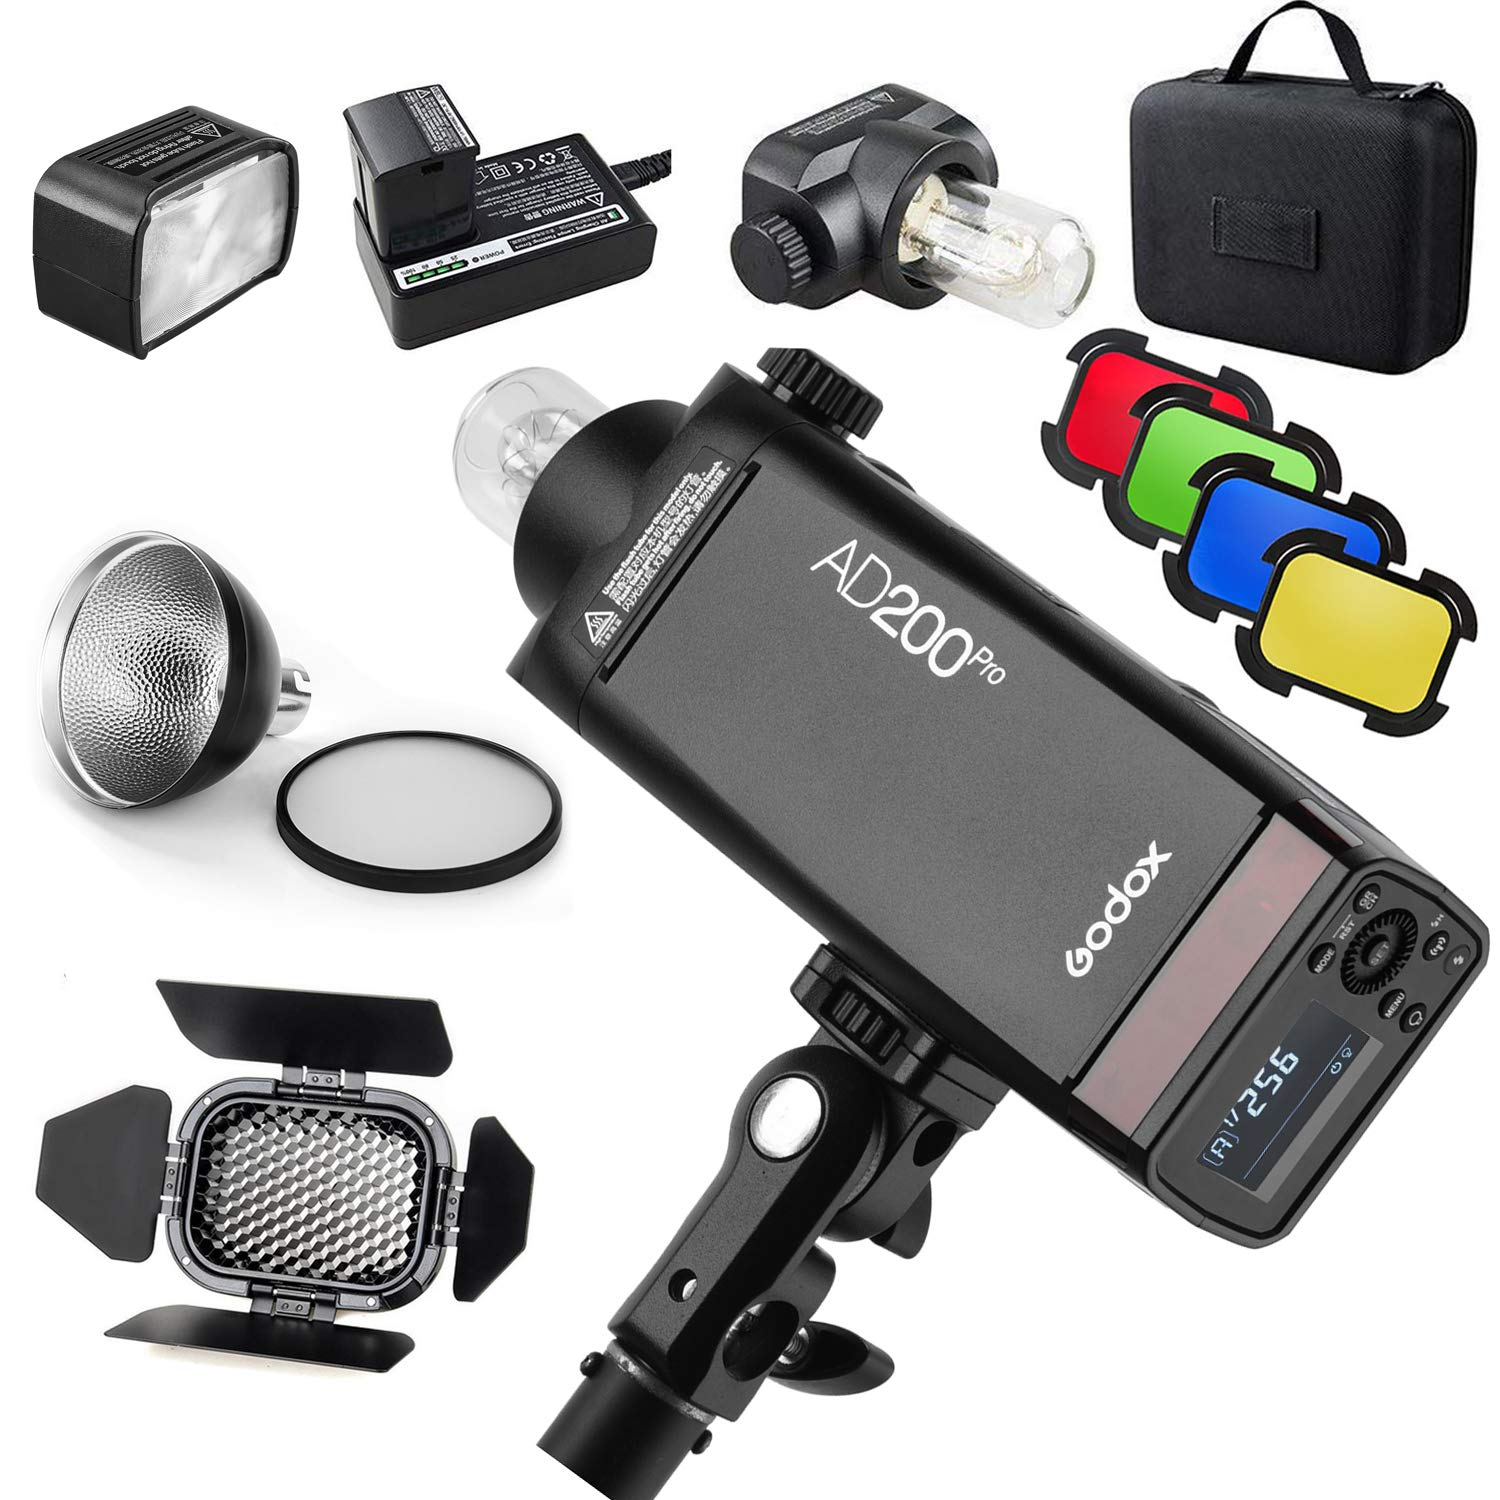 GODOX AD200Pro AD200 Pro with BD-07 Barn Door Honeycomb Grid 4 Color Filter Kit, Standard Reflector with Soft Diffuser, 200W 2.4G Flash Strobe, 1/8000 HSS, 500 Full Power Flashes, 0.01-2.1s Recycling by Godox